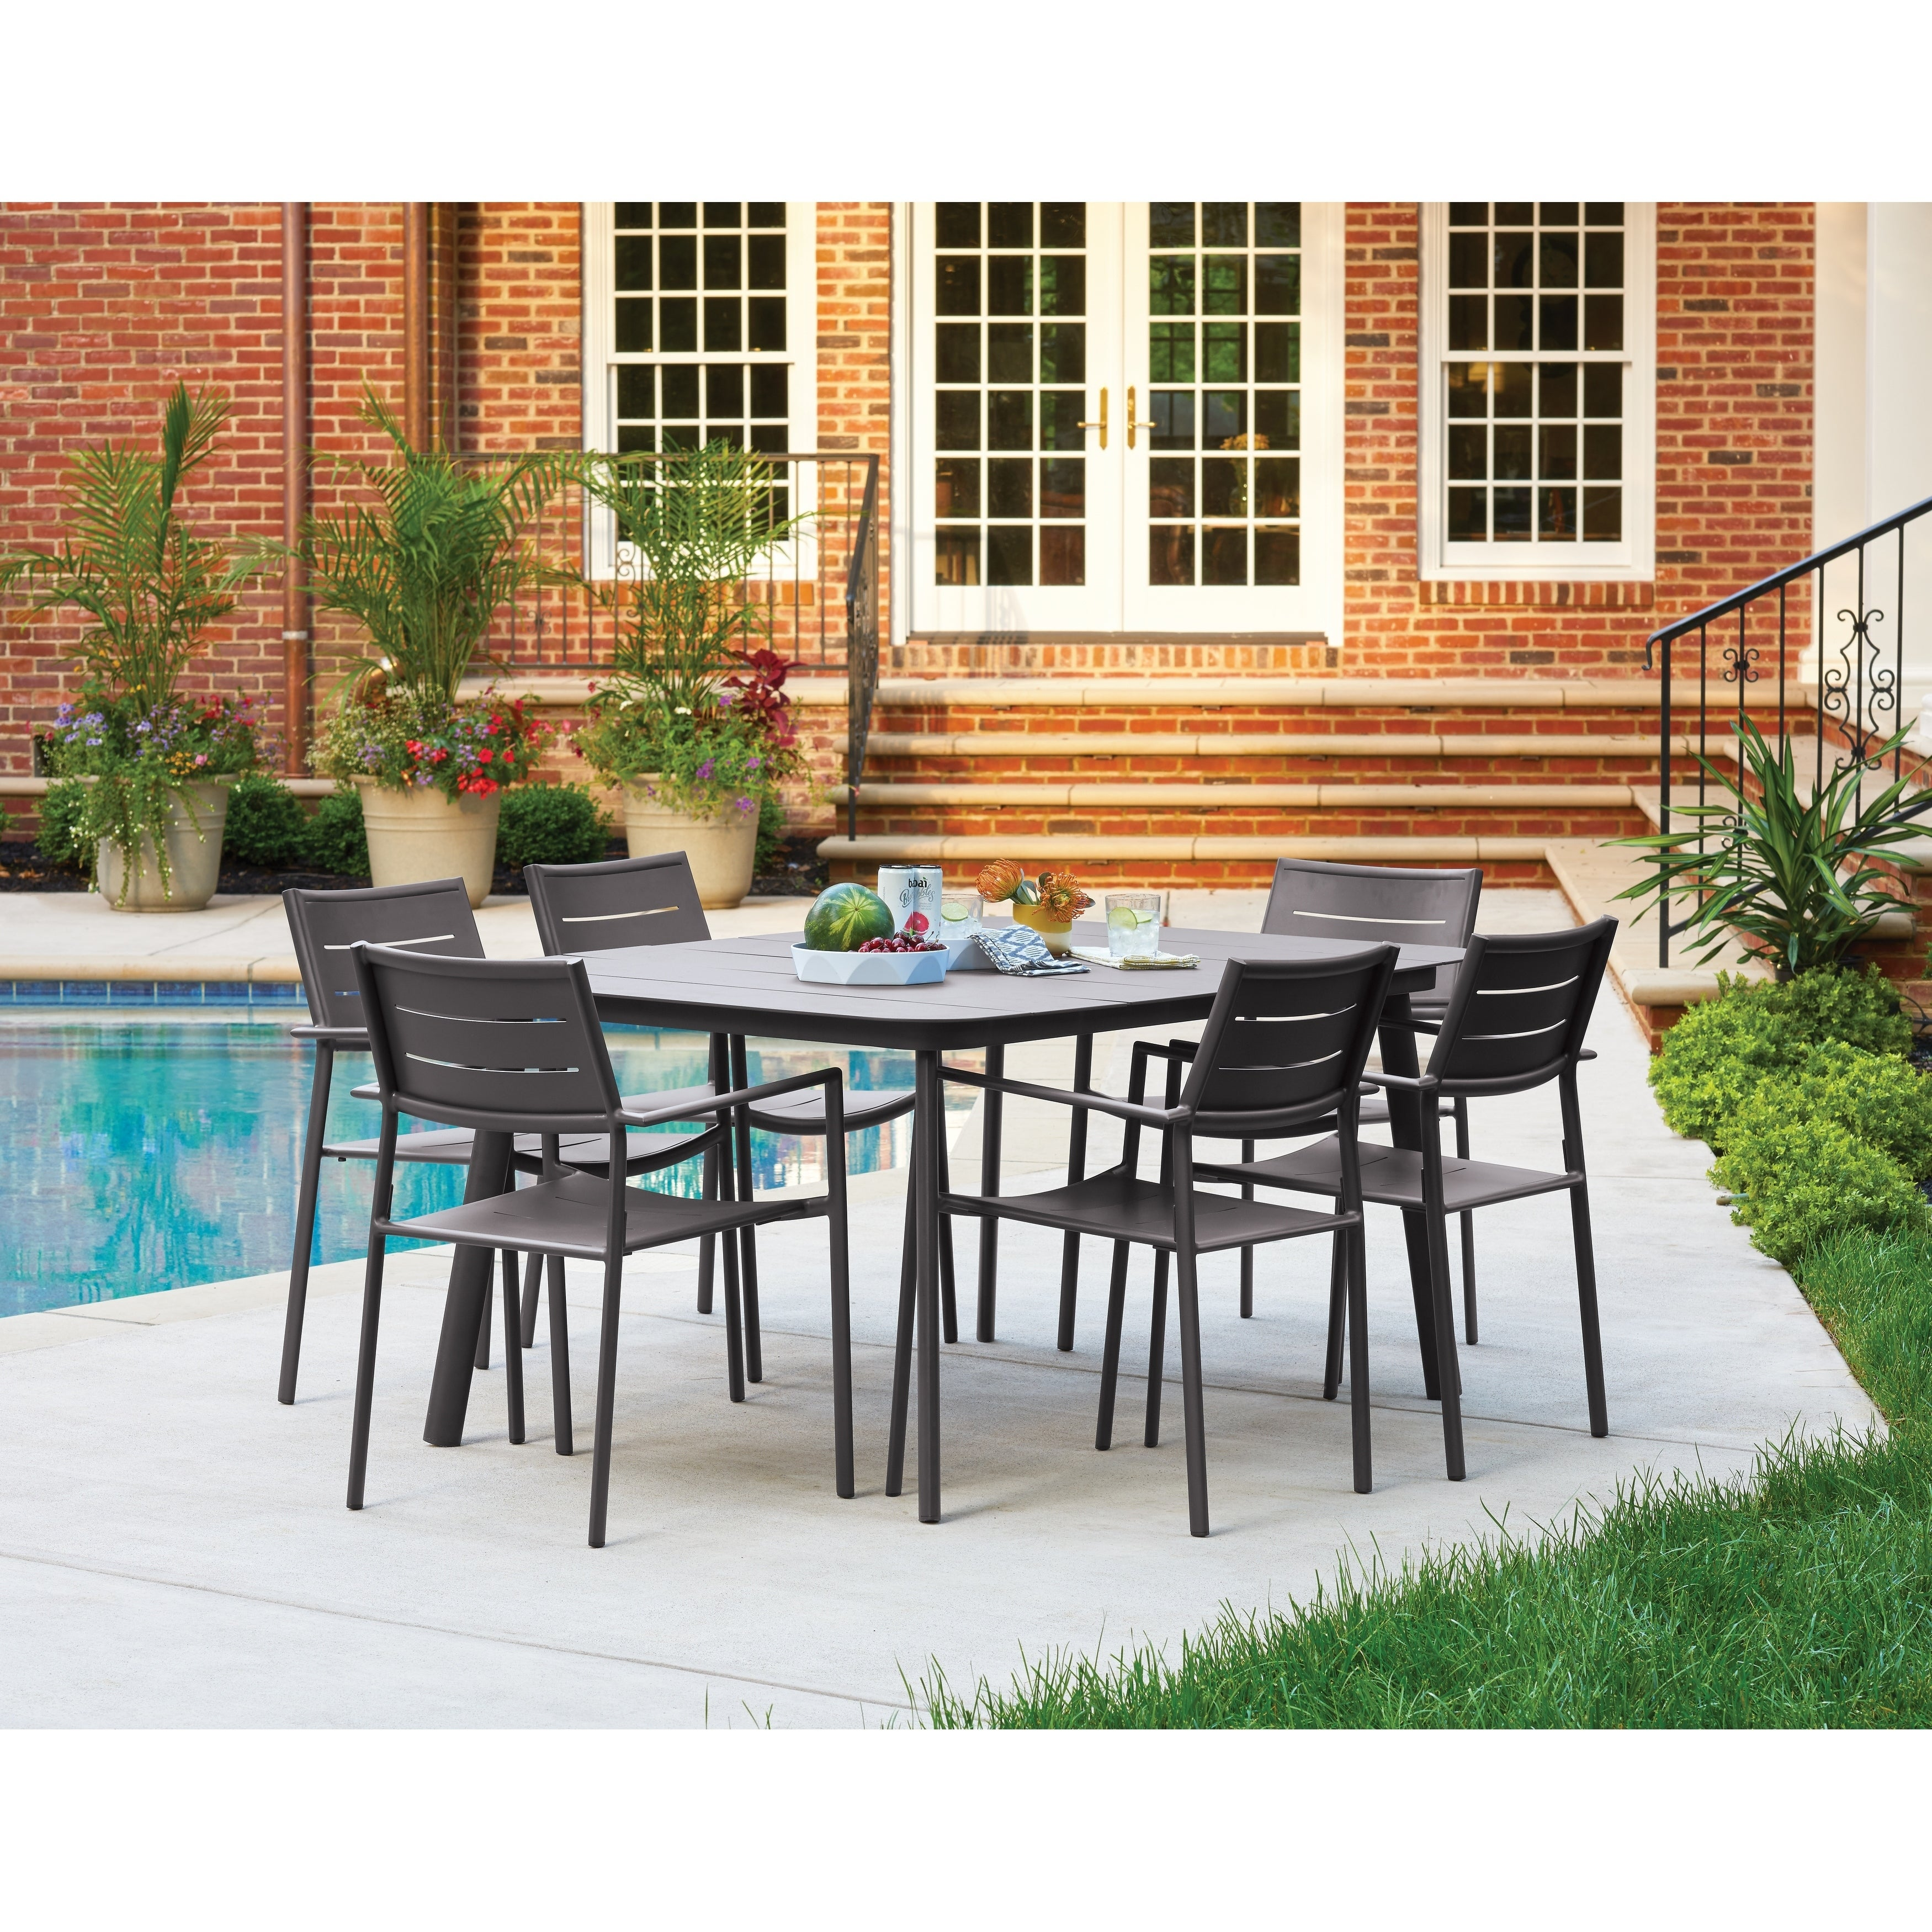 Shop For Oxford Garden Eiland 7 Piece Carbon Dining Table Set Get Free Delivery On Everything At Overstock Your Online Garden Patio Shop Get 5 In Rewards With Club O 31011044